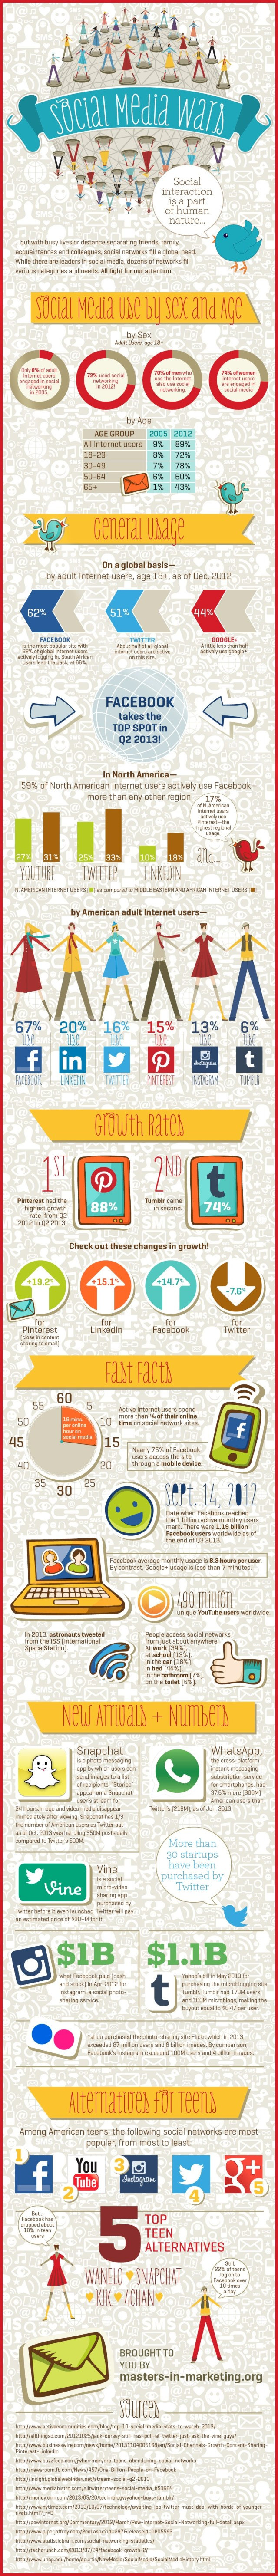 social media usage infographic